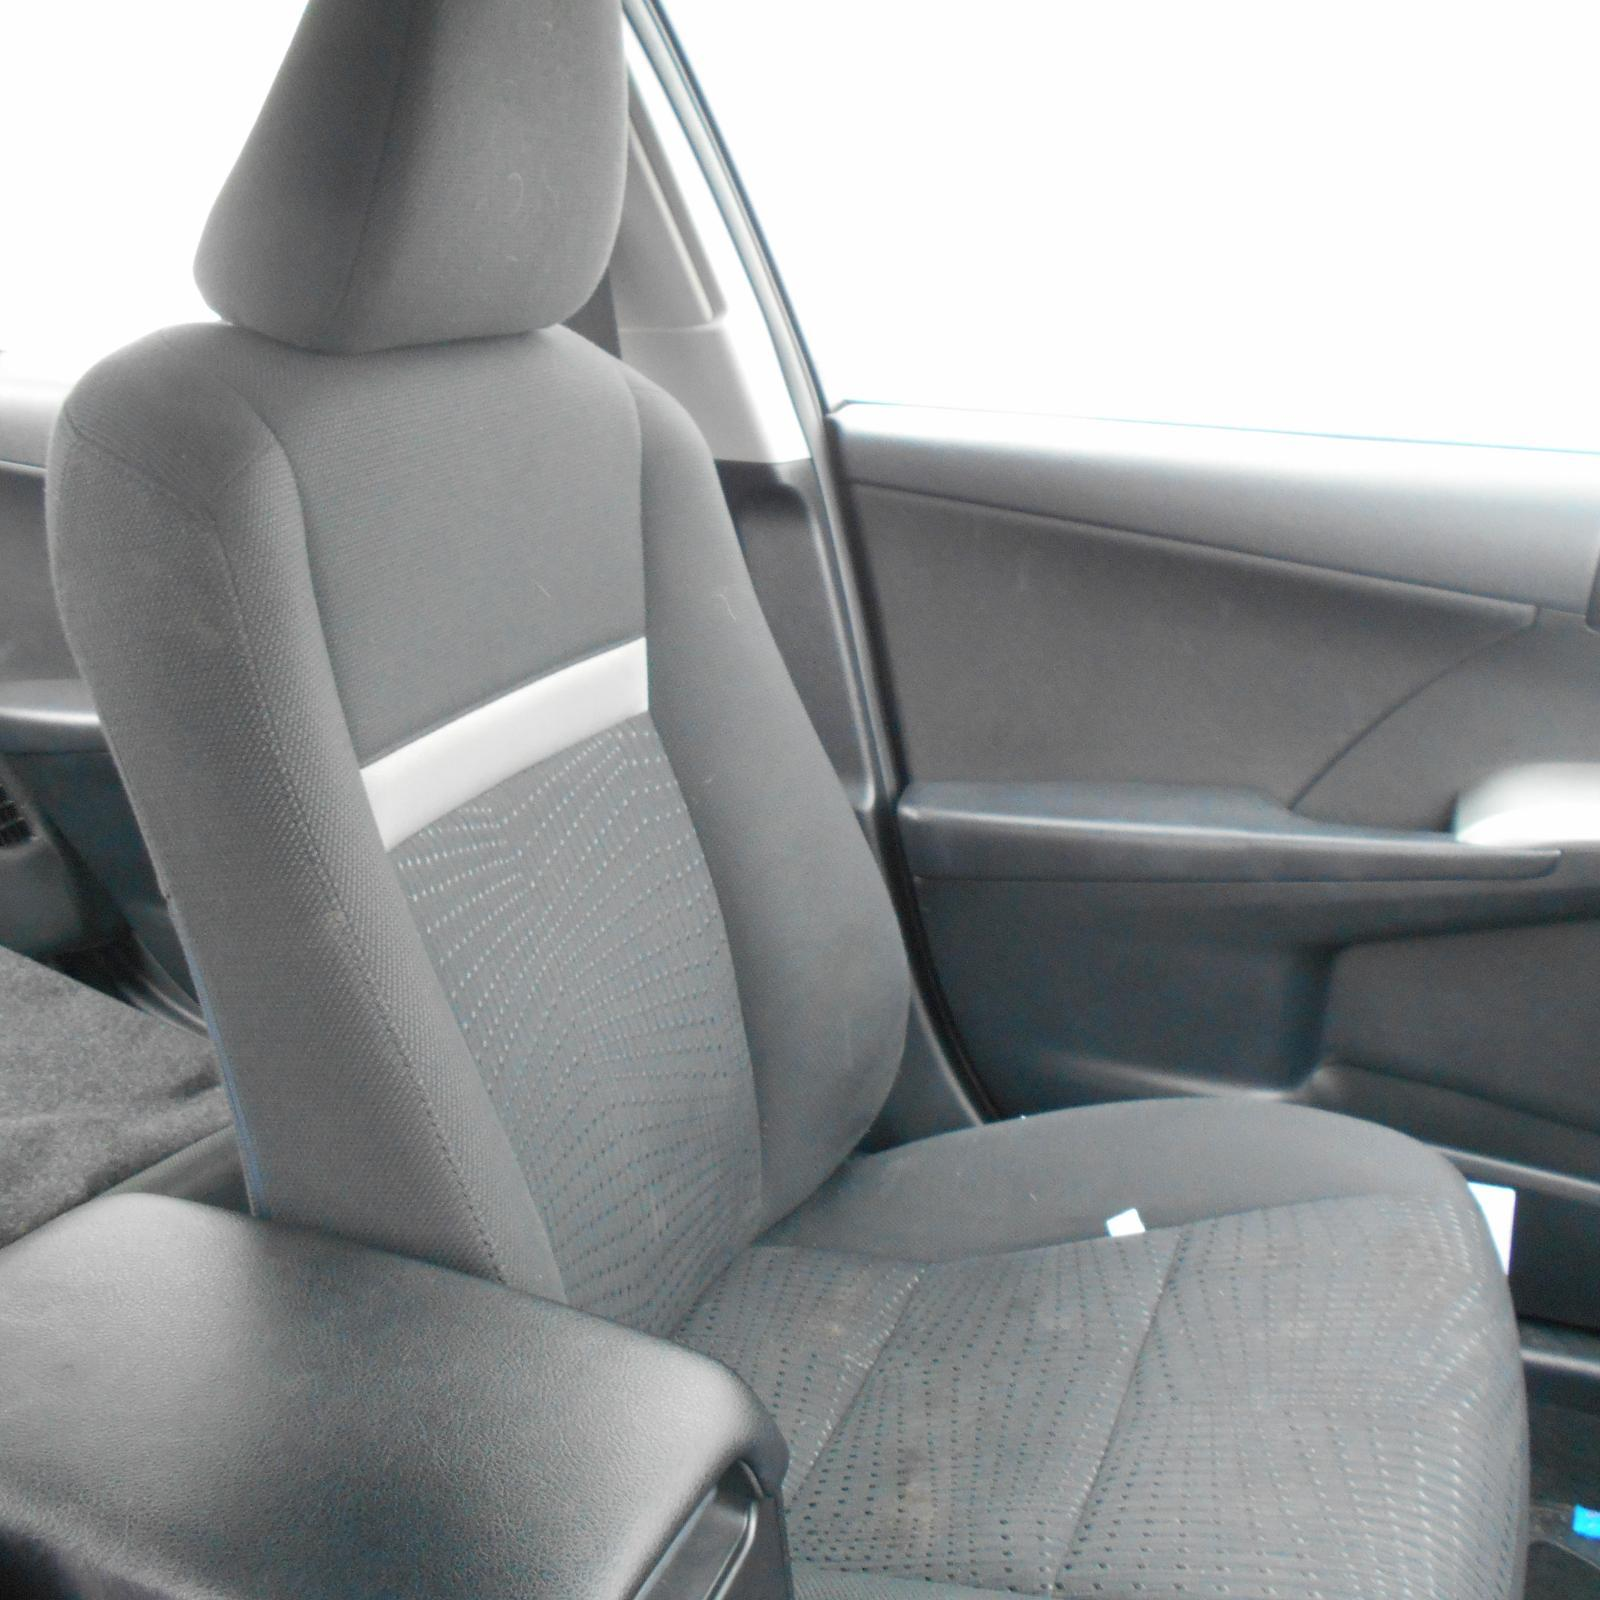 TOYOTA CAMRY, Front Seat, LH FRONT, CLOTH, HYBRID, ACV50, 12/11-05/15